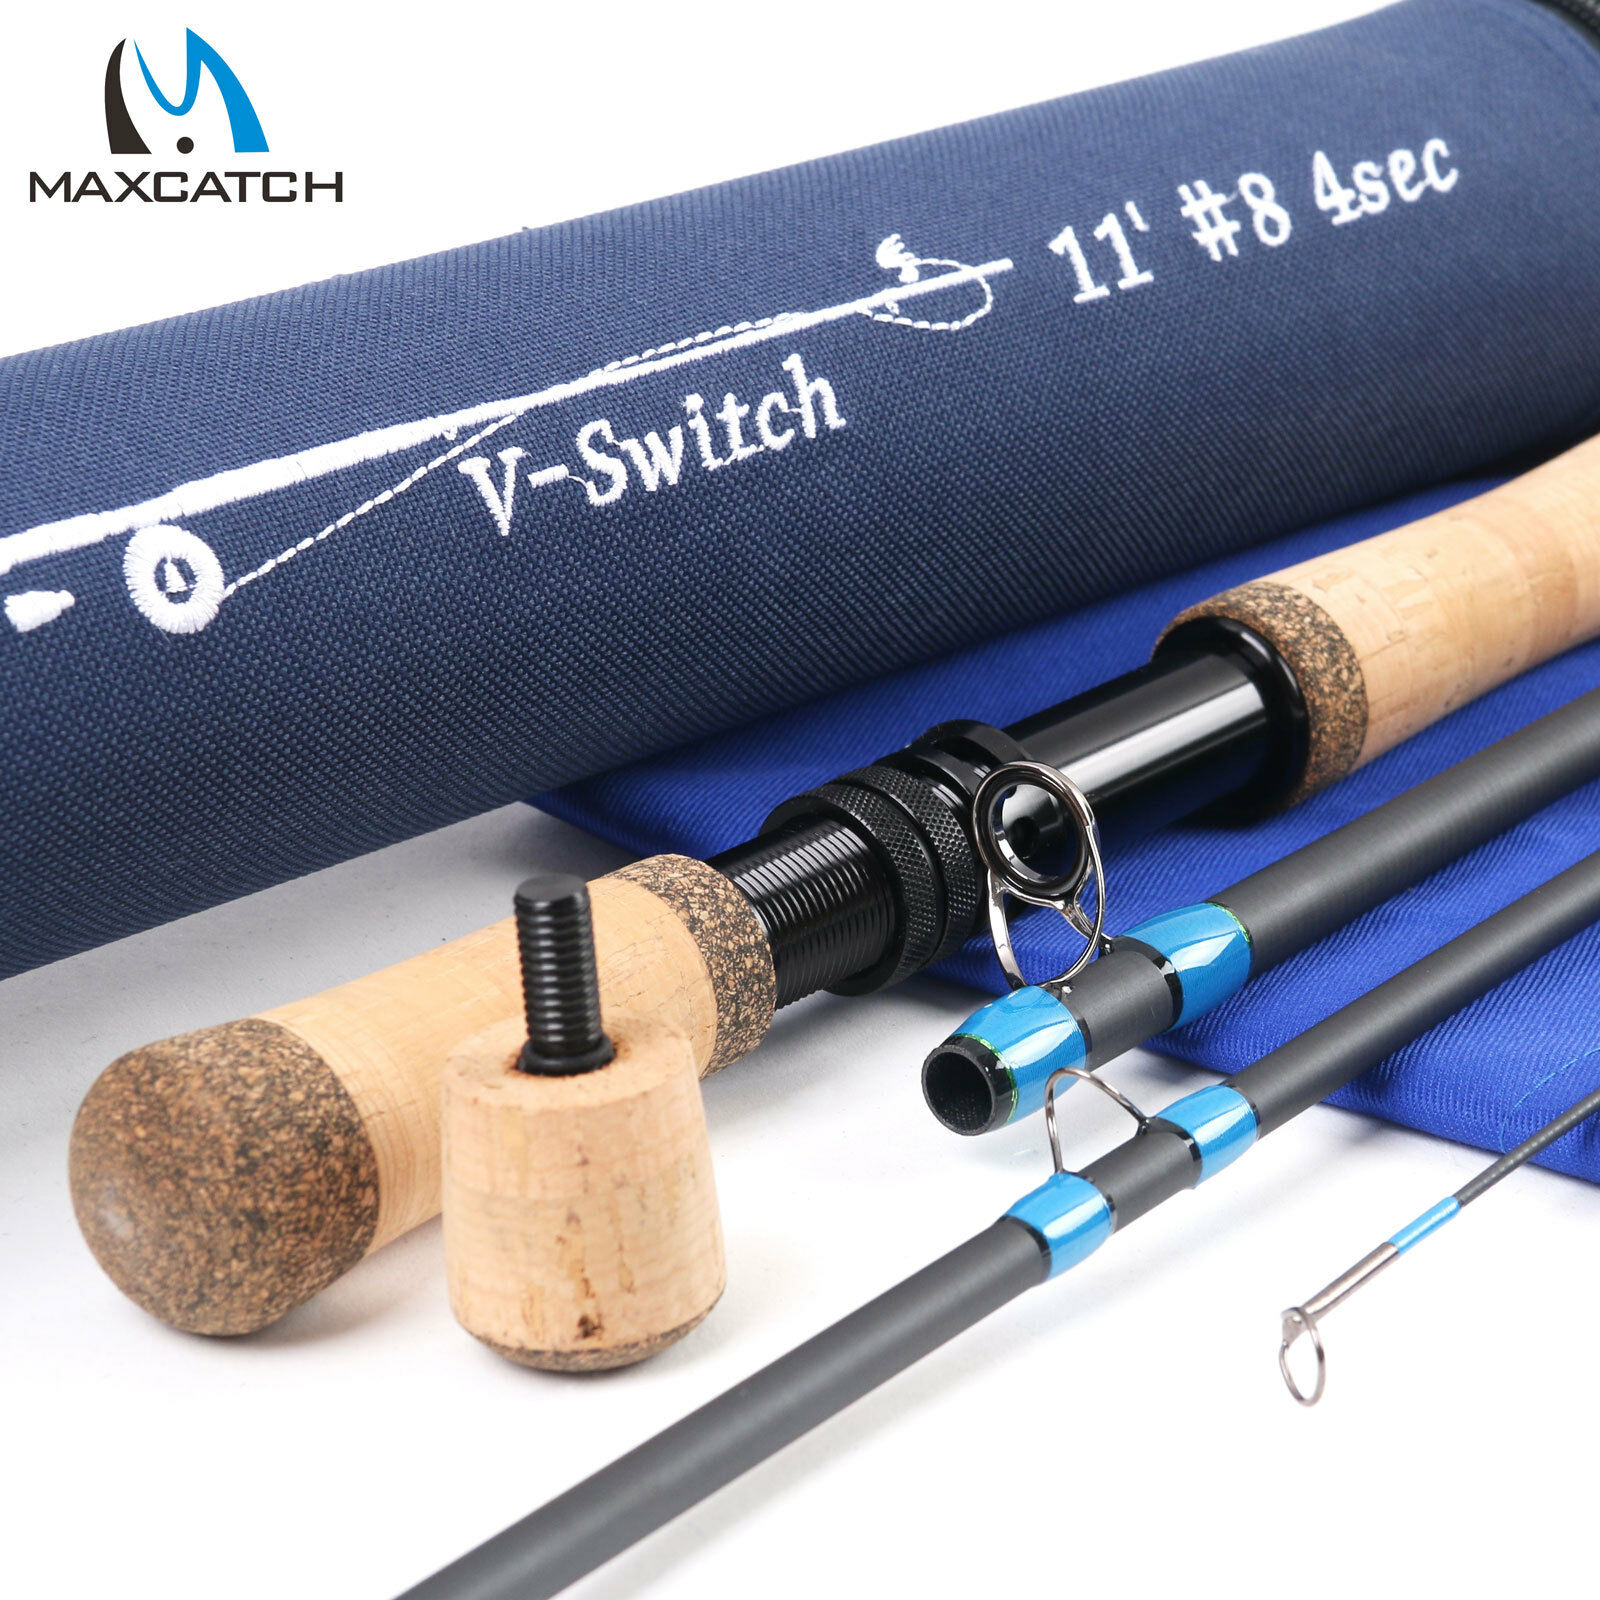 Maxcatch Switch Rod 4 5 6 7 8 9WT Fly Fishing Rod With Switchable Fighting Butt